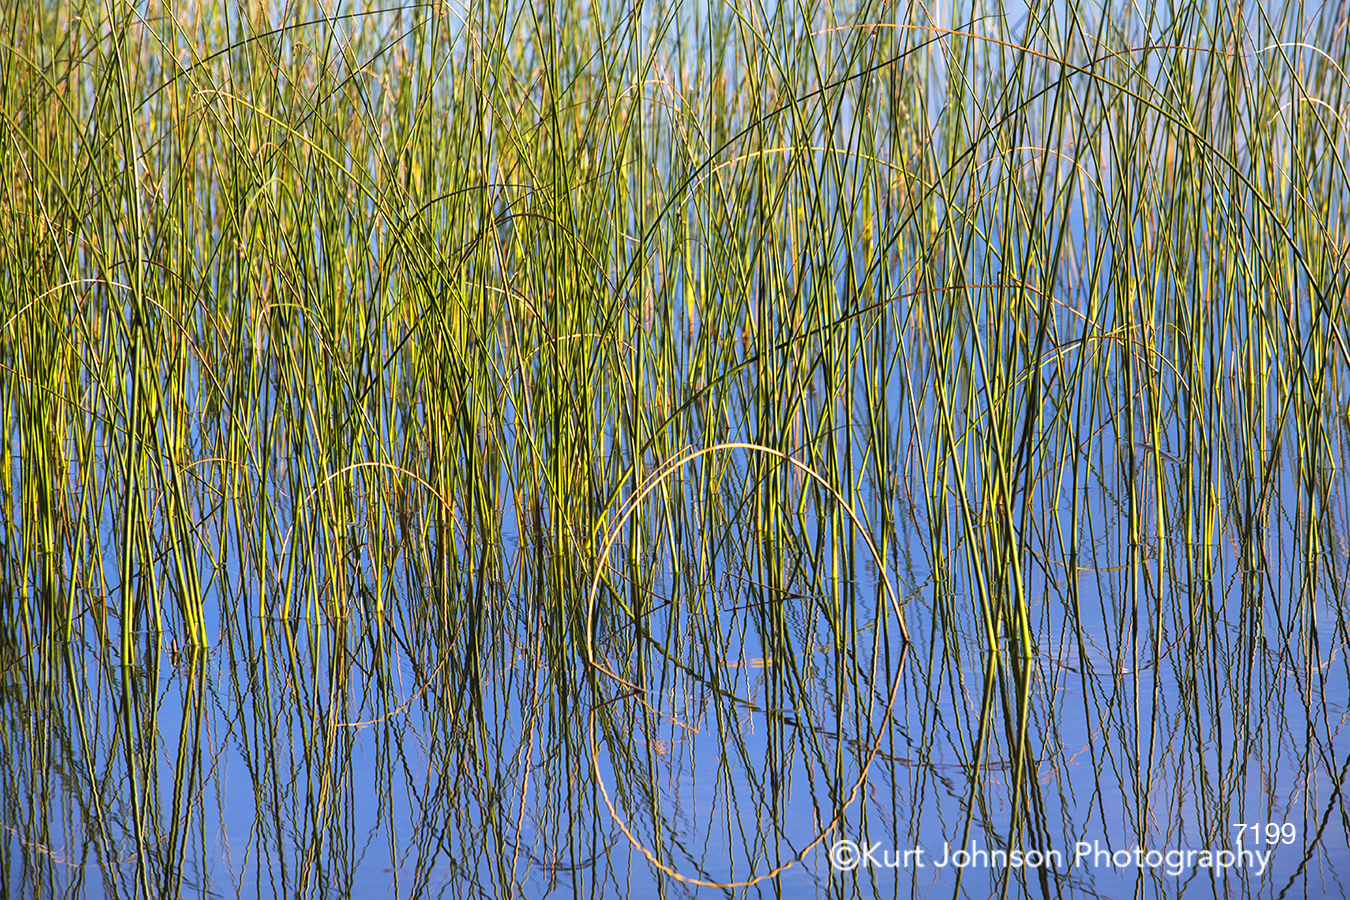 tall grass grasses green blue water reflection reed lines